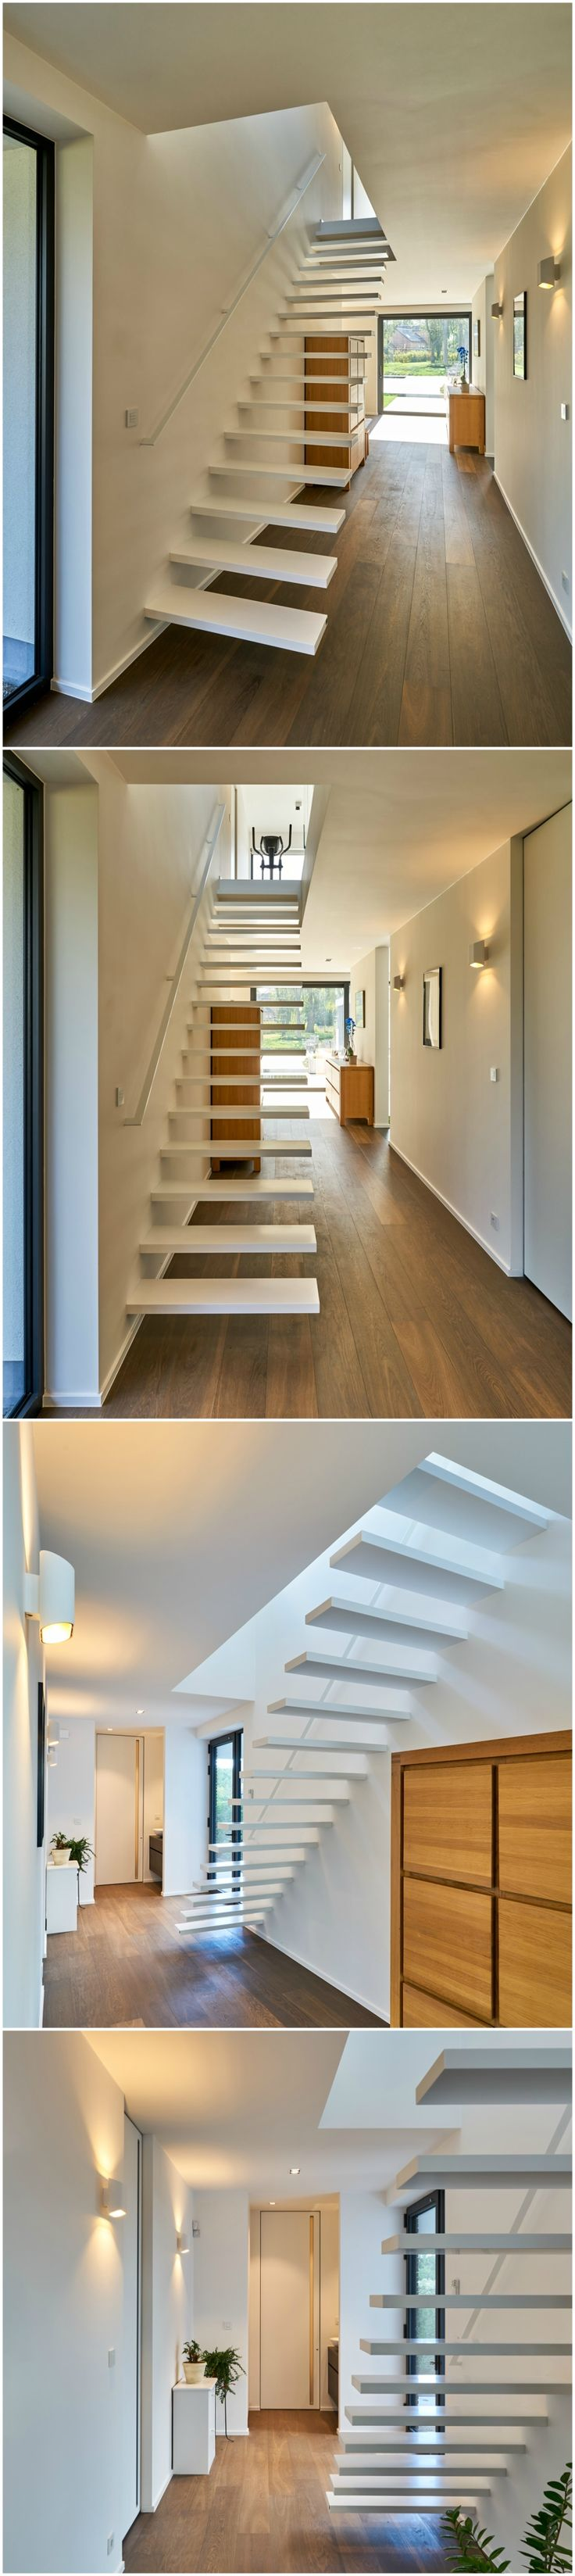 25 beste idee n over moderne trap op pinterest trappen en weegschaal - Model interieur trap ...